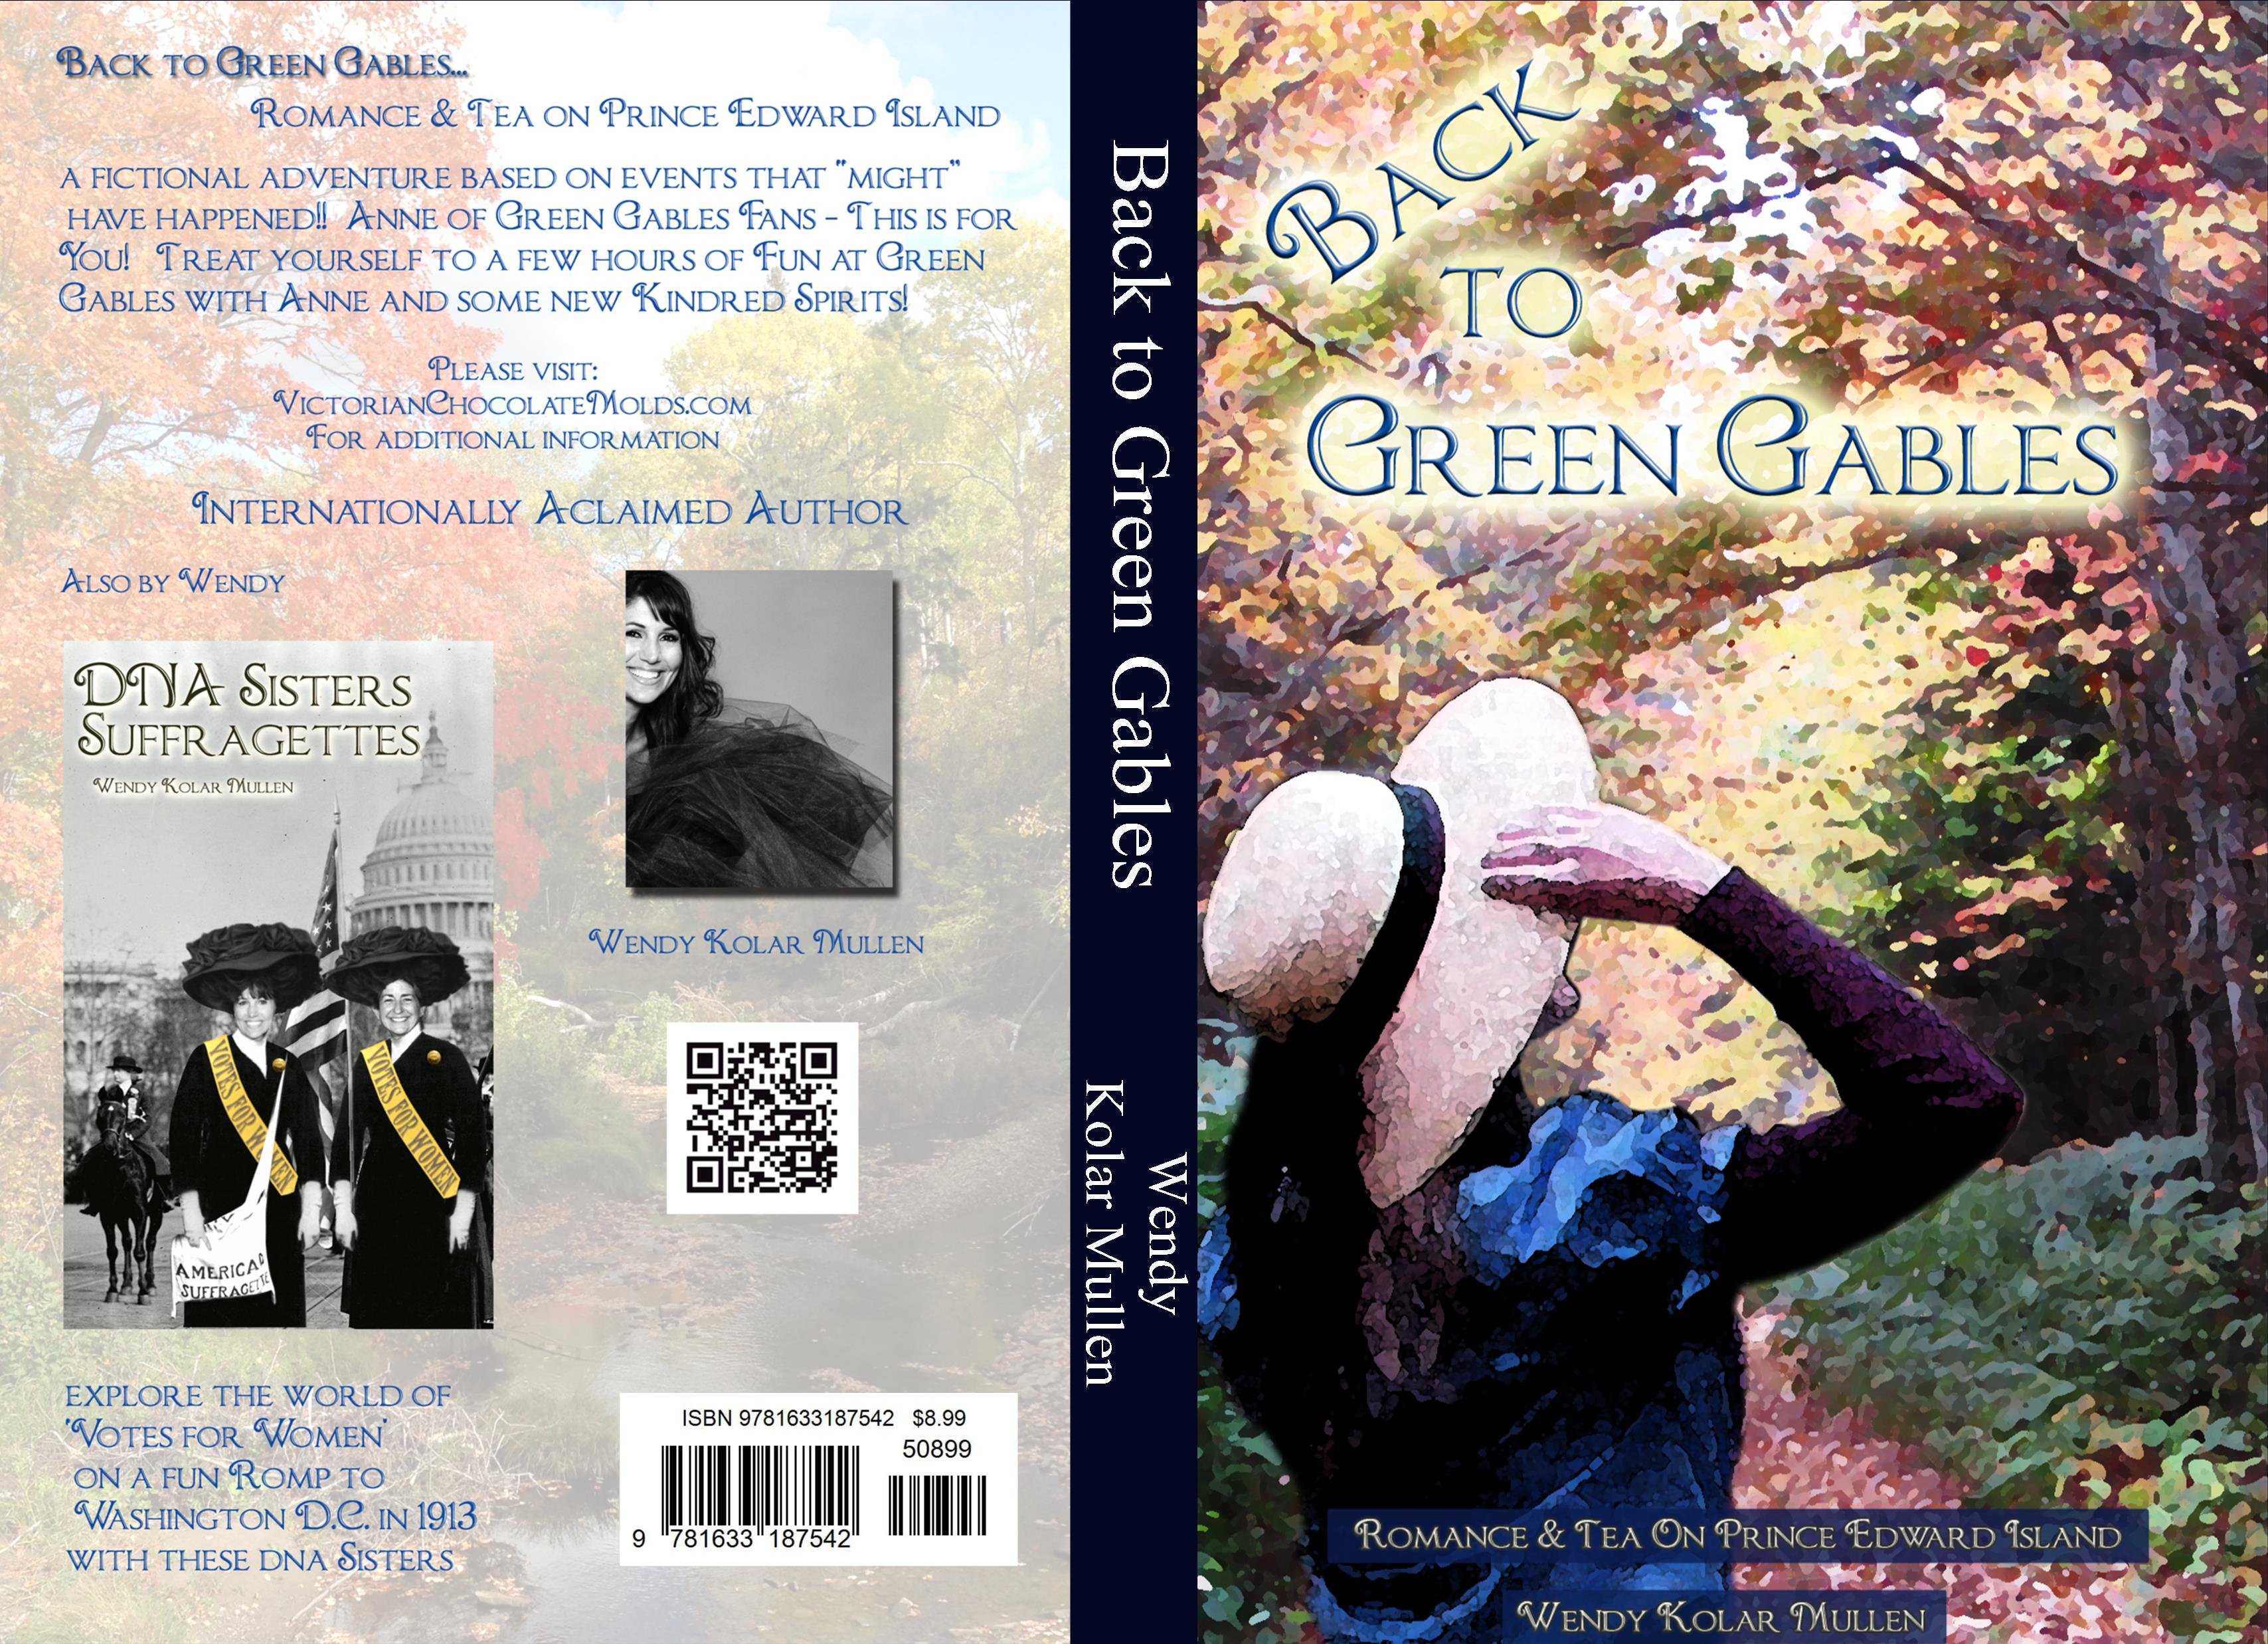 Back to Green Gables cover image